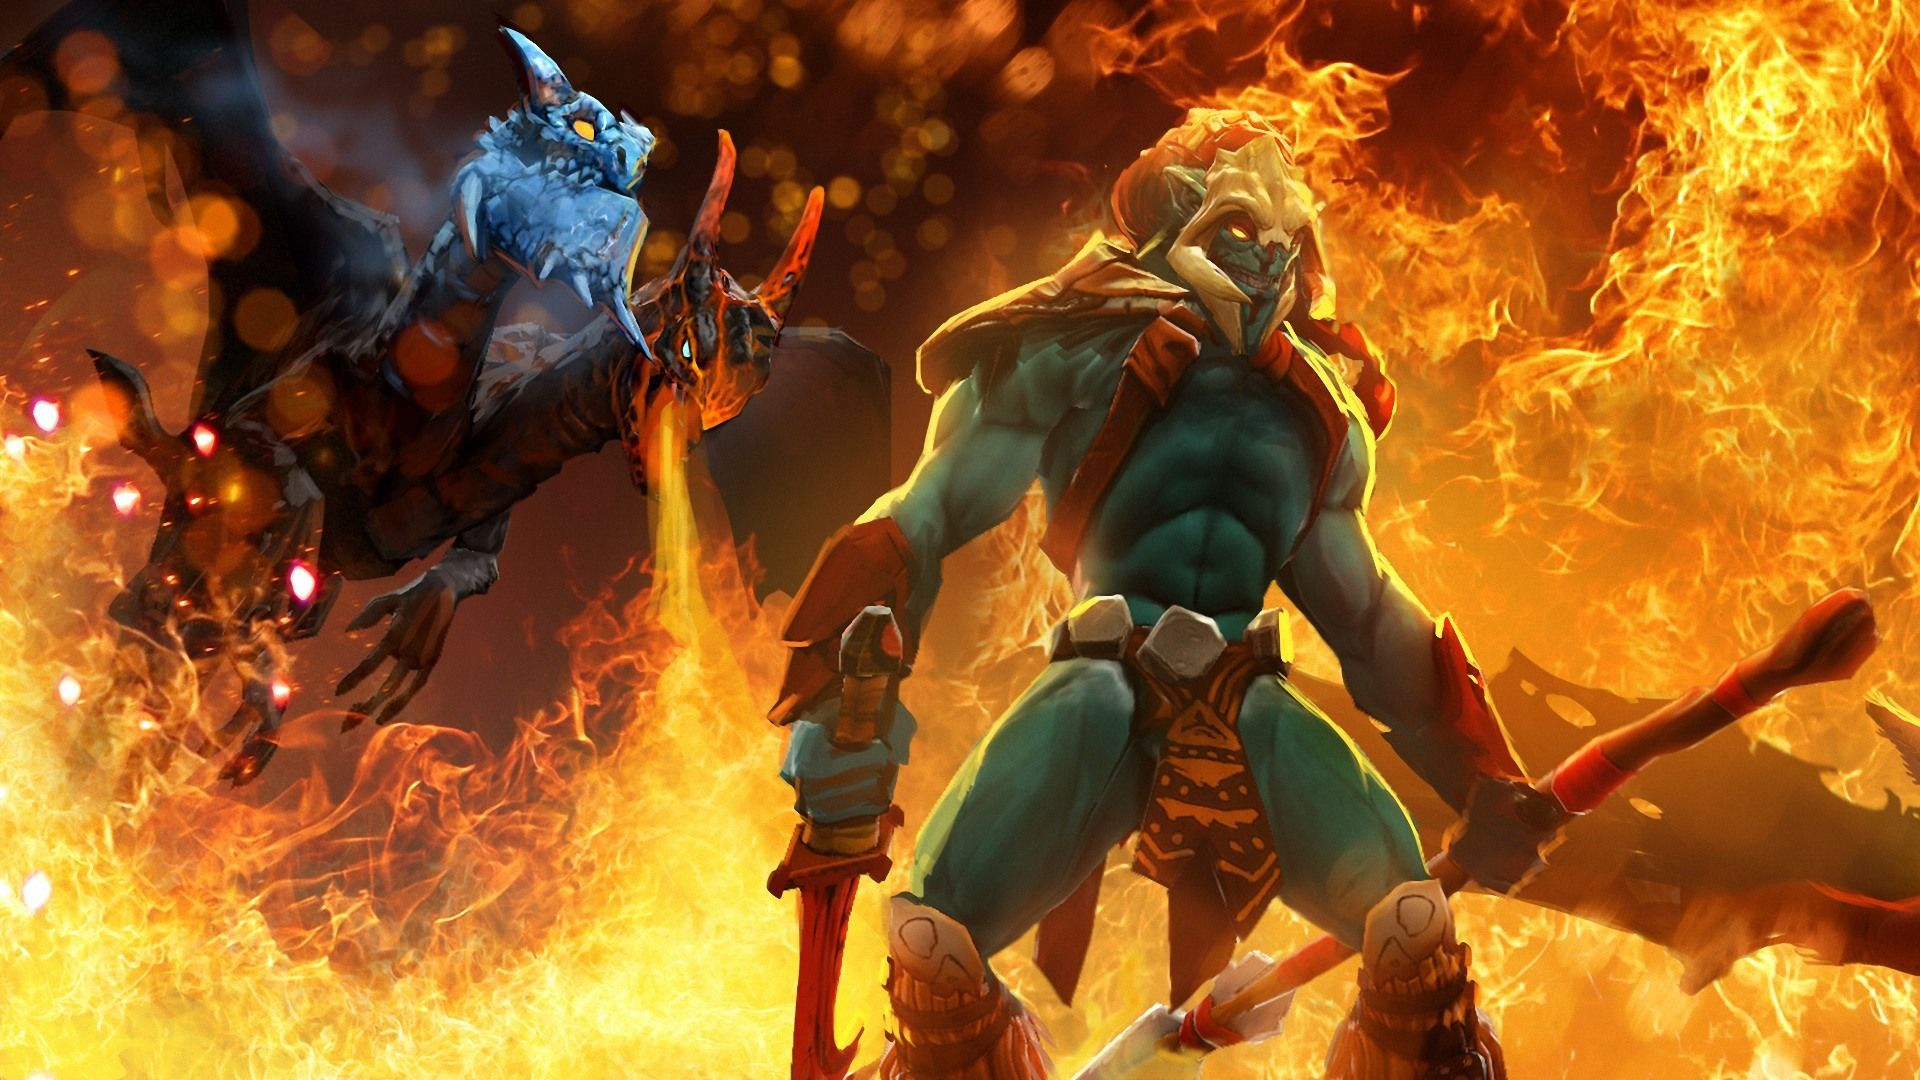 Hd wallpaper dota 2 - Find This Pin And More On Hd Wallpapers Image Of Dota 2